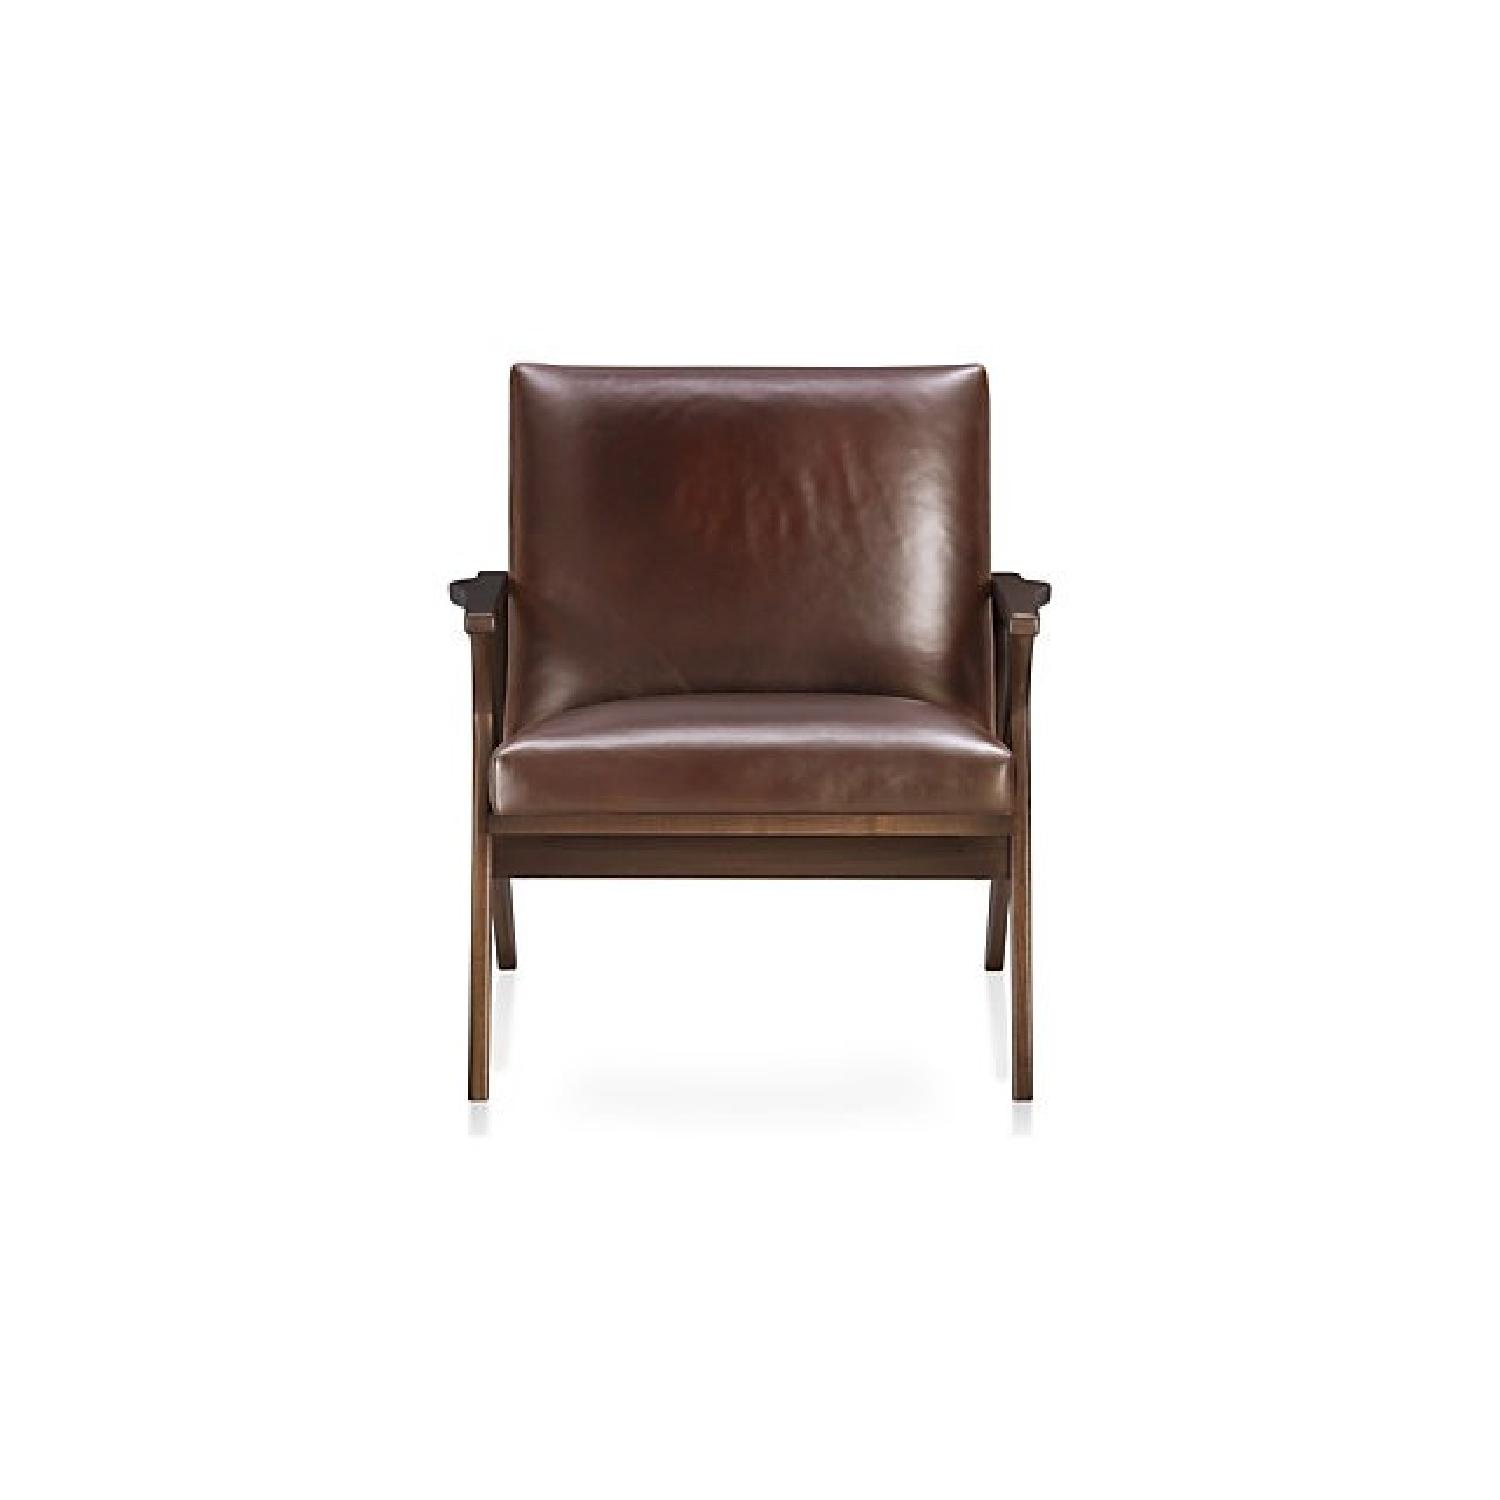 Crate & Barrel Cavett Leather Chair & Ottoman - image-0